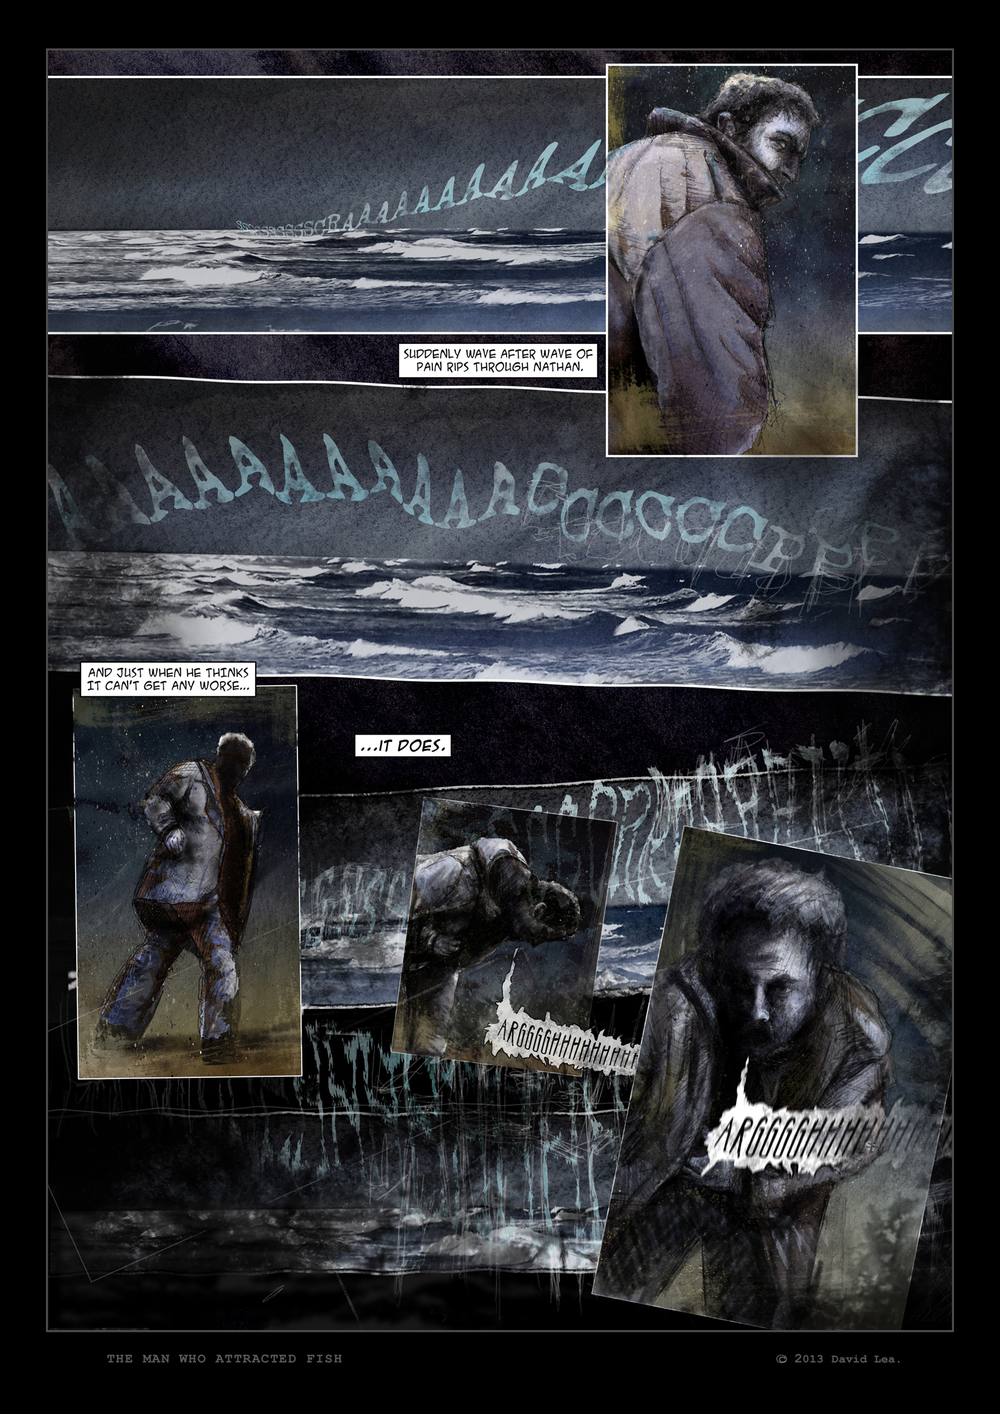 TMWAF_Graphic novel scene - page 4